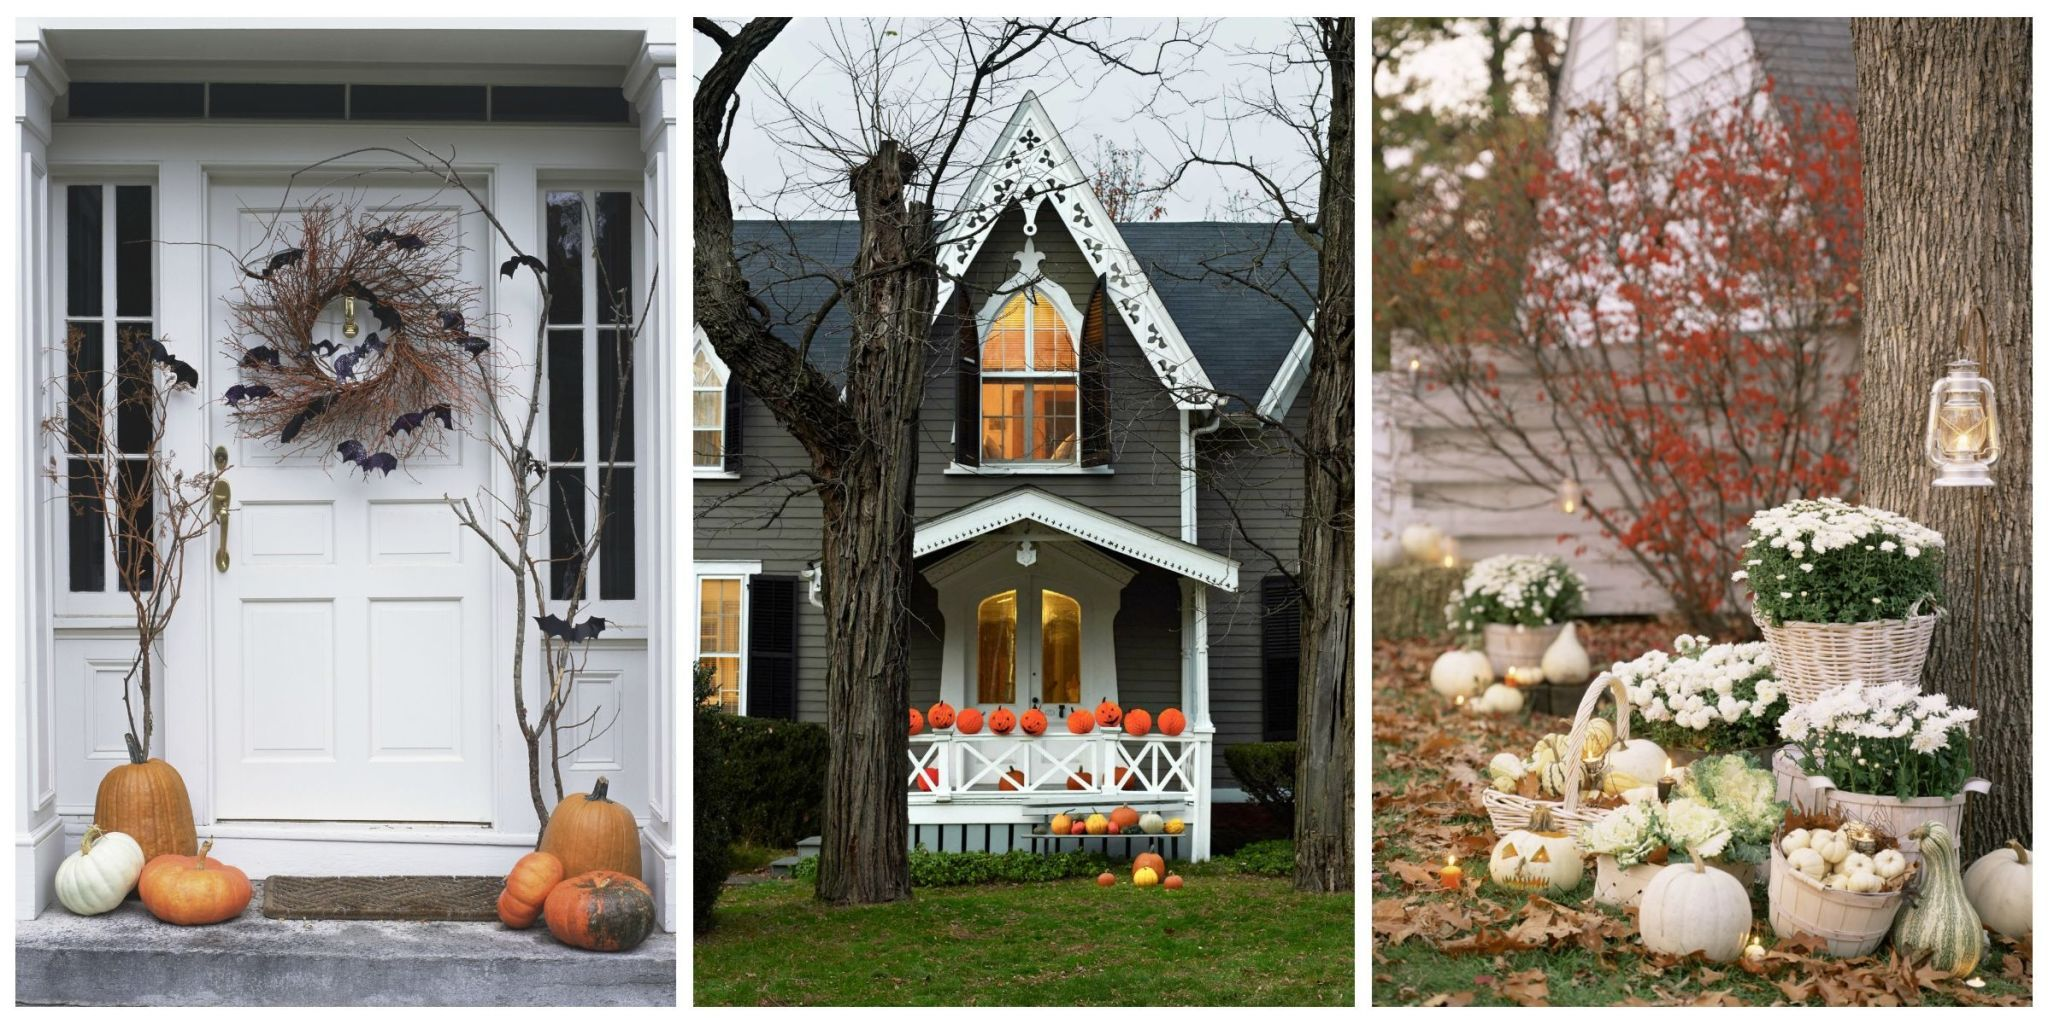 High Quality These Are The Wickedest Ways To Transform The Outside Of Your Home For  Halloween.